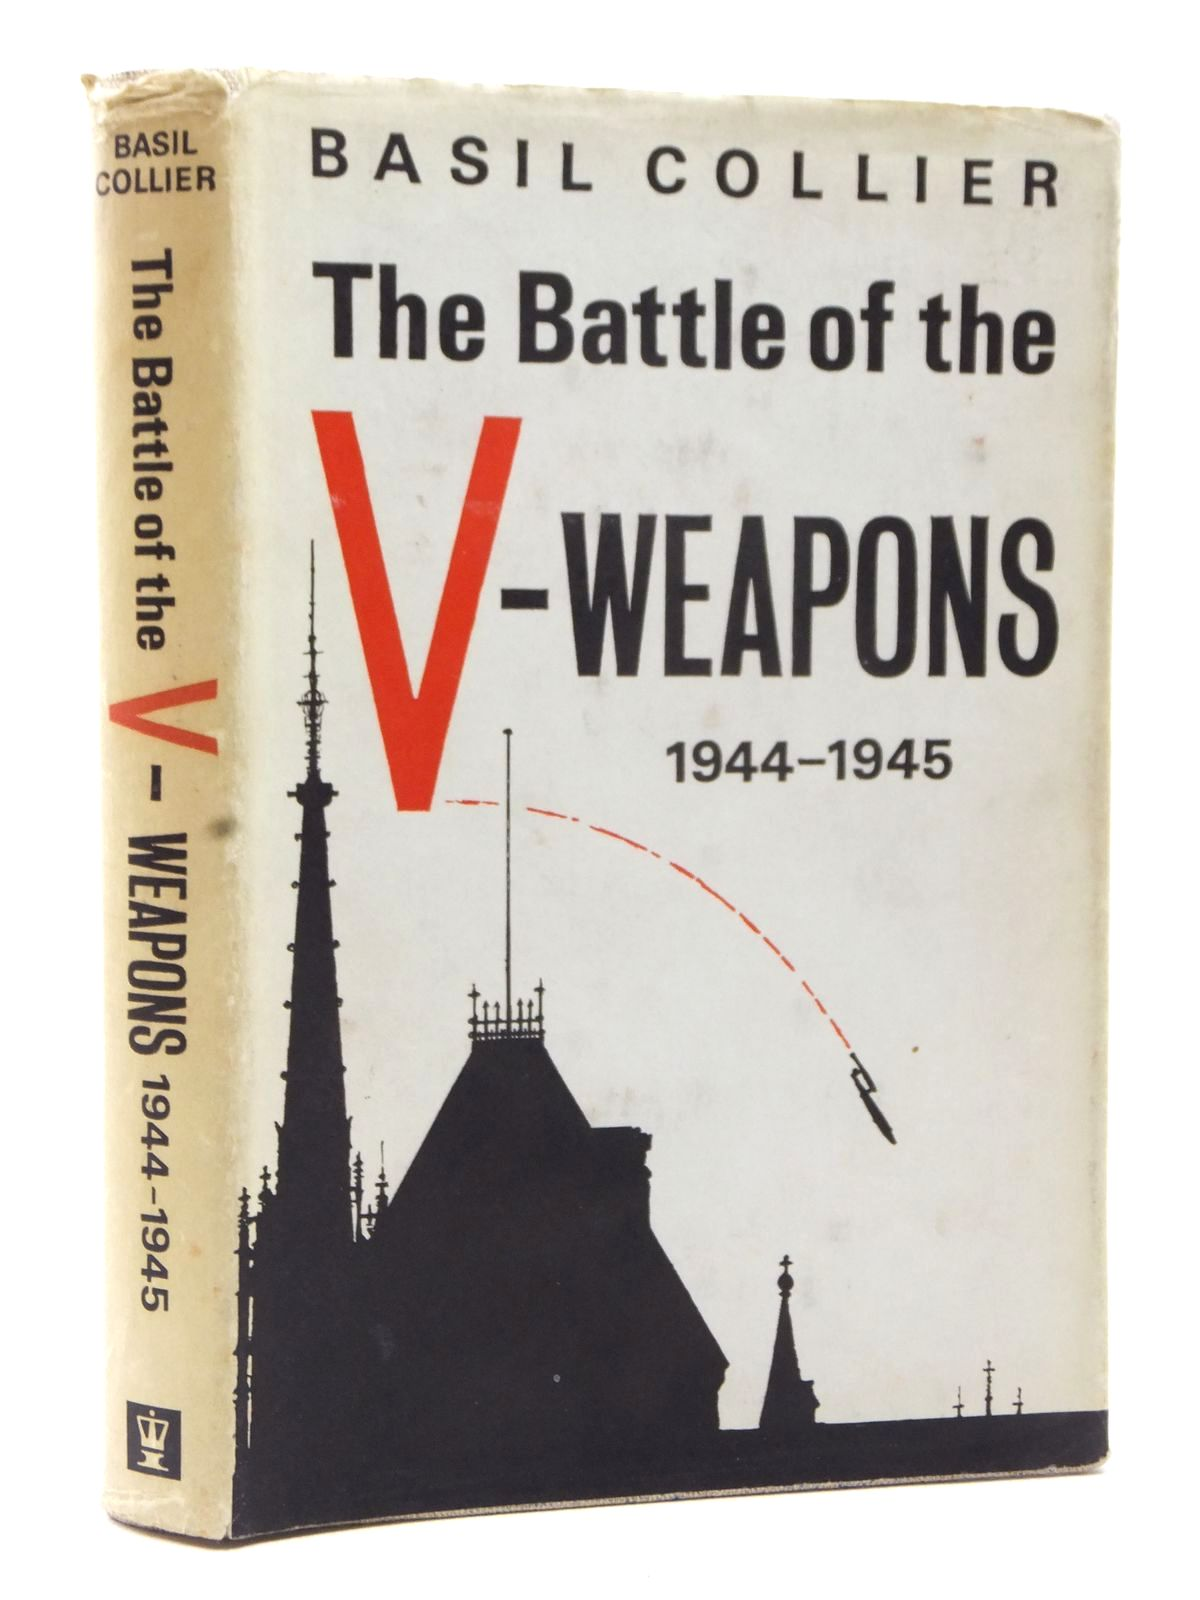 Photo of THE BATTLE OF THE V-WEAPONS 1944-45 written by Collier, Basil published by Hodder & Stoughton (STOCK CODE: 1609125)  for sale by Stella & Rose's Books